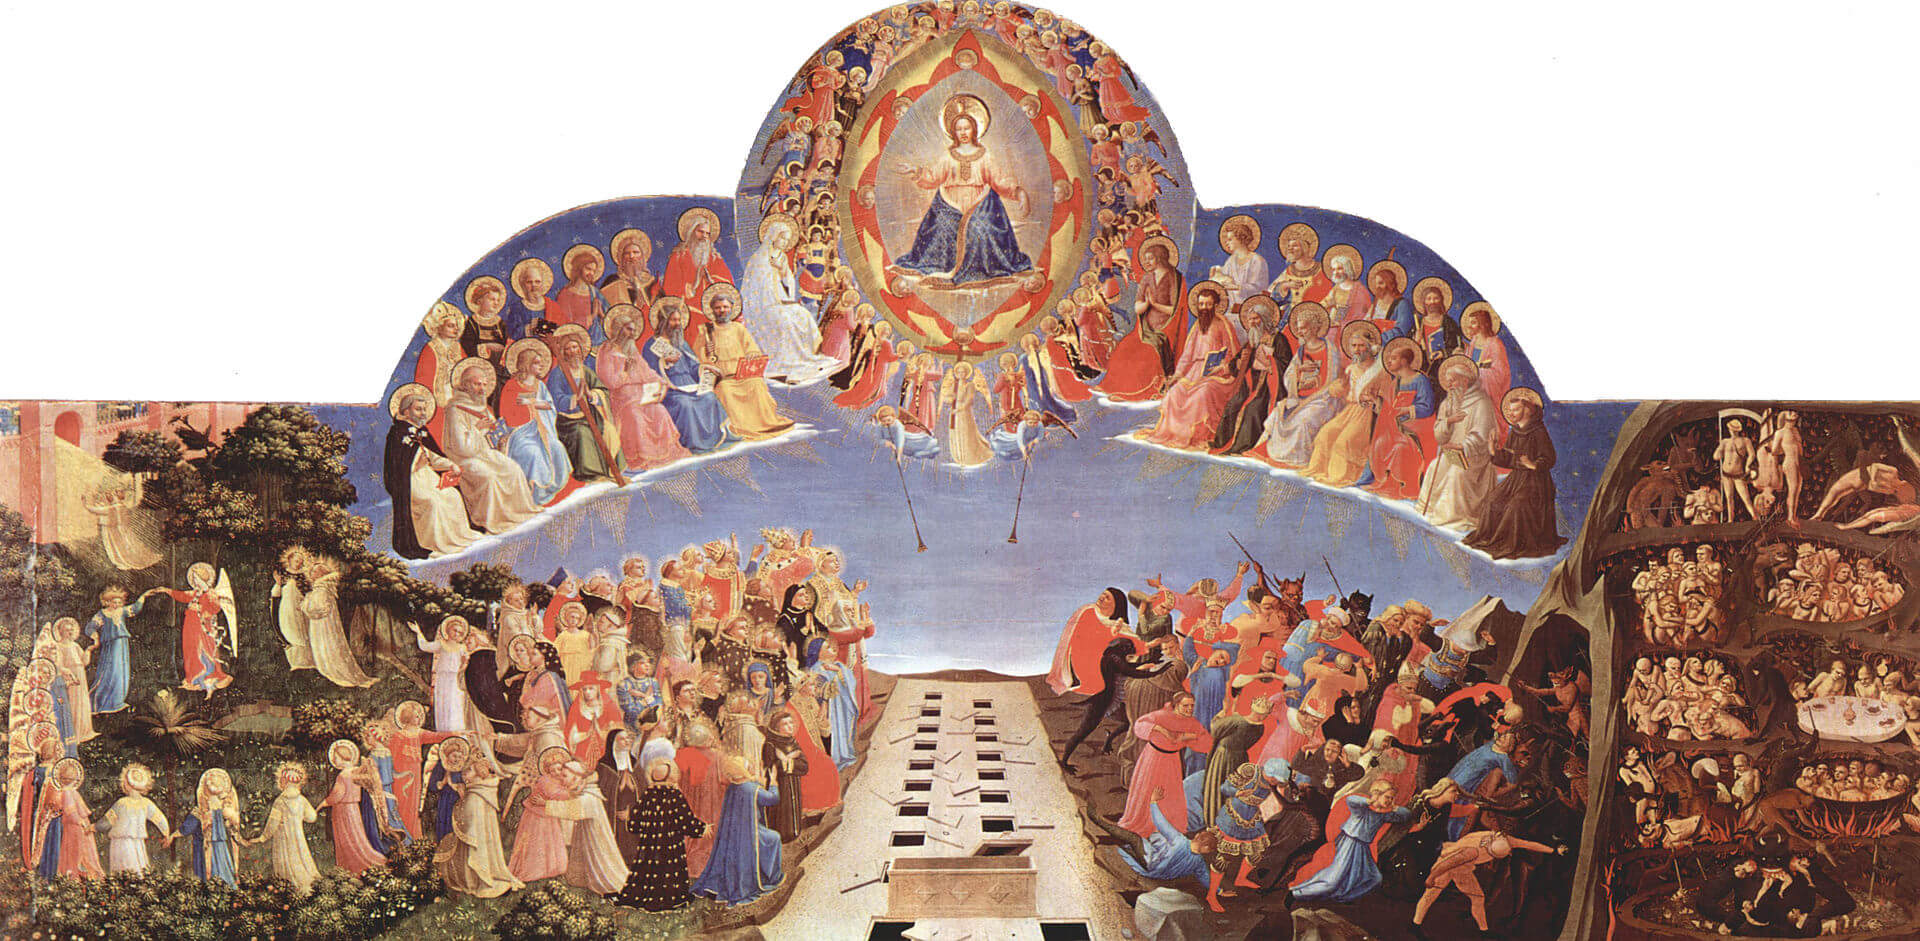 San Marco, Florence,The Day of Judgement, upper panel of an altarpiece. It shows the precision, detail and colour required in a commissioned work